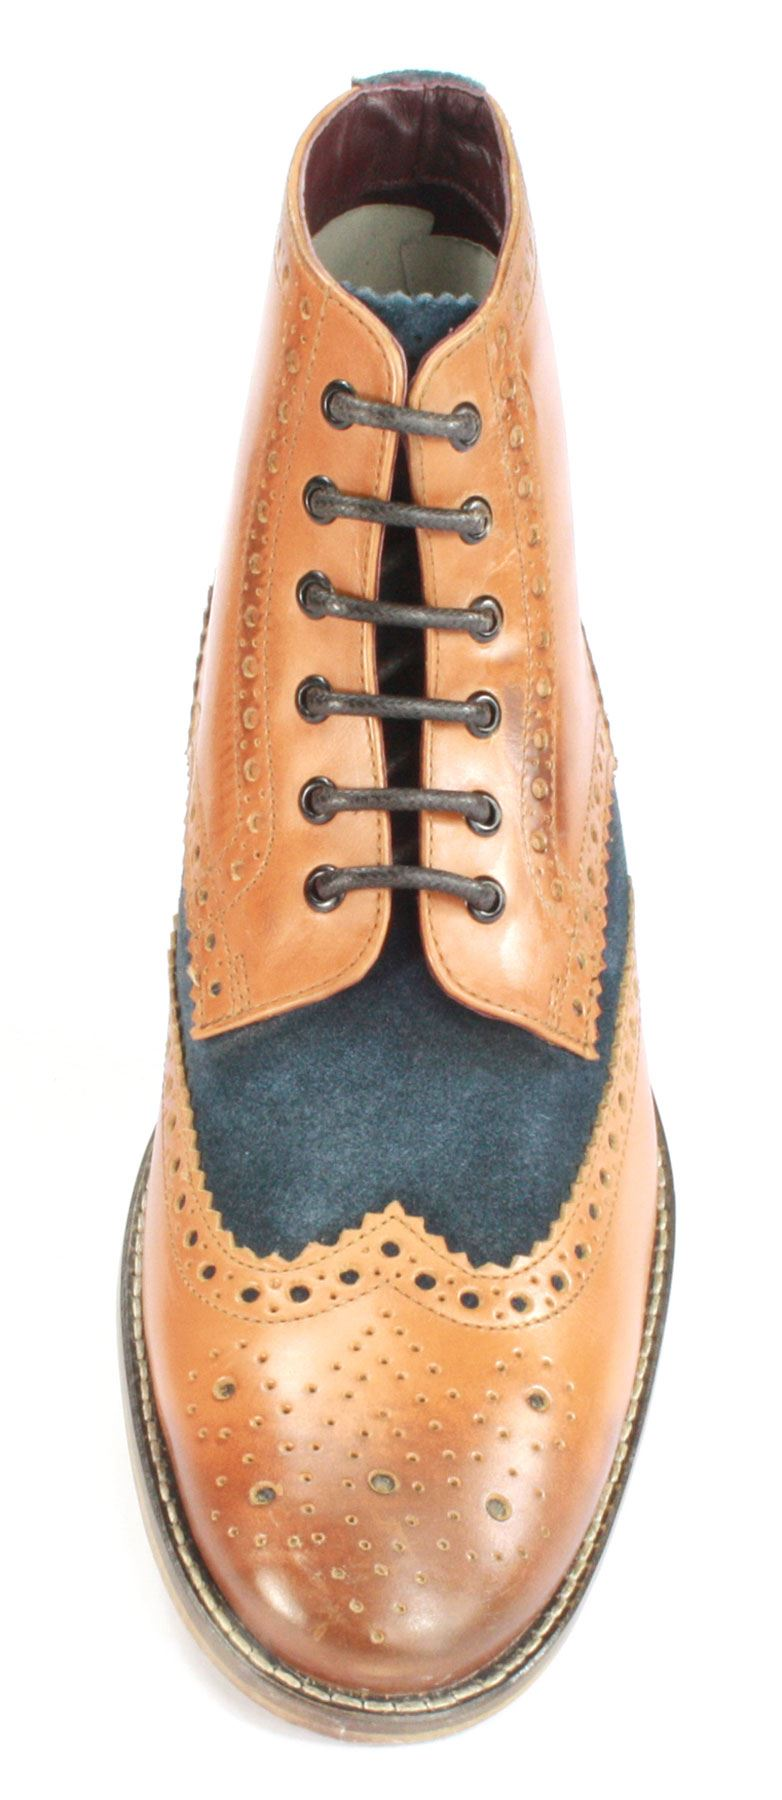 London Brogues Mens Leather Lace Up Wingtip Formal GATSBY Hi Brogue Boots